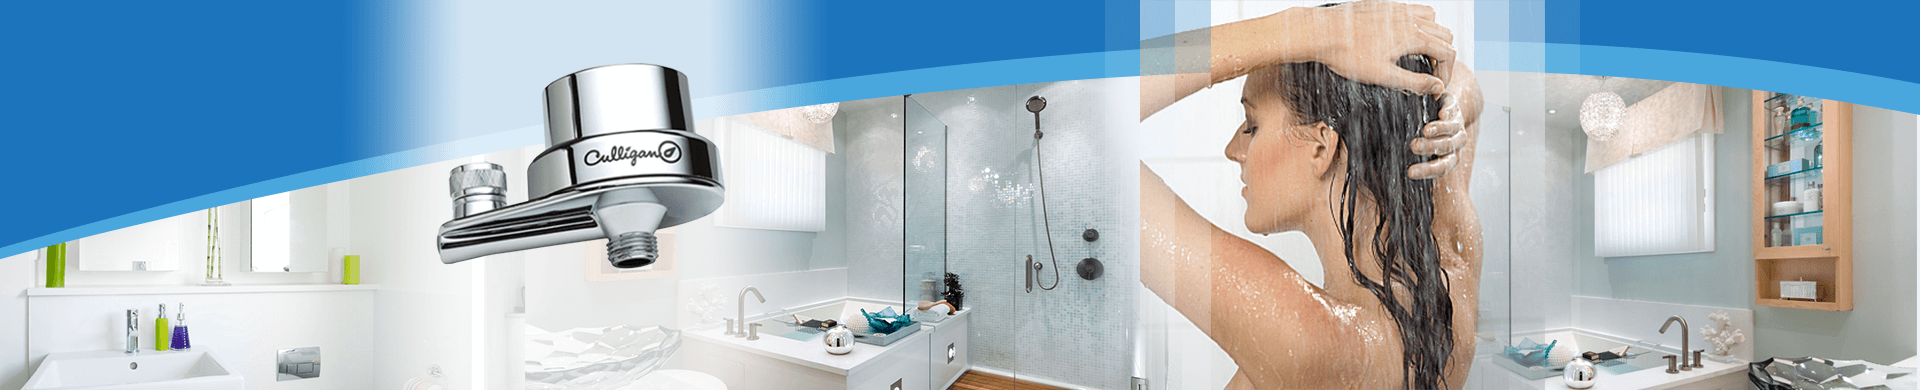 Culligan Inline Shower Filters